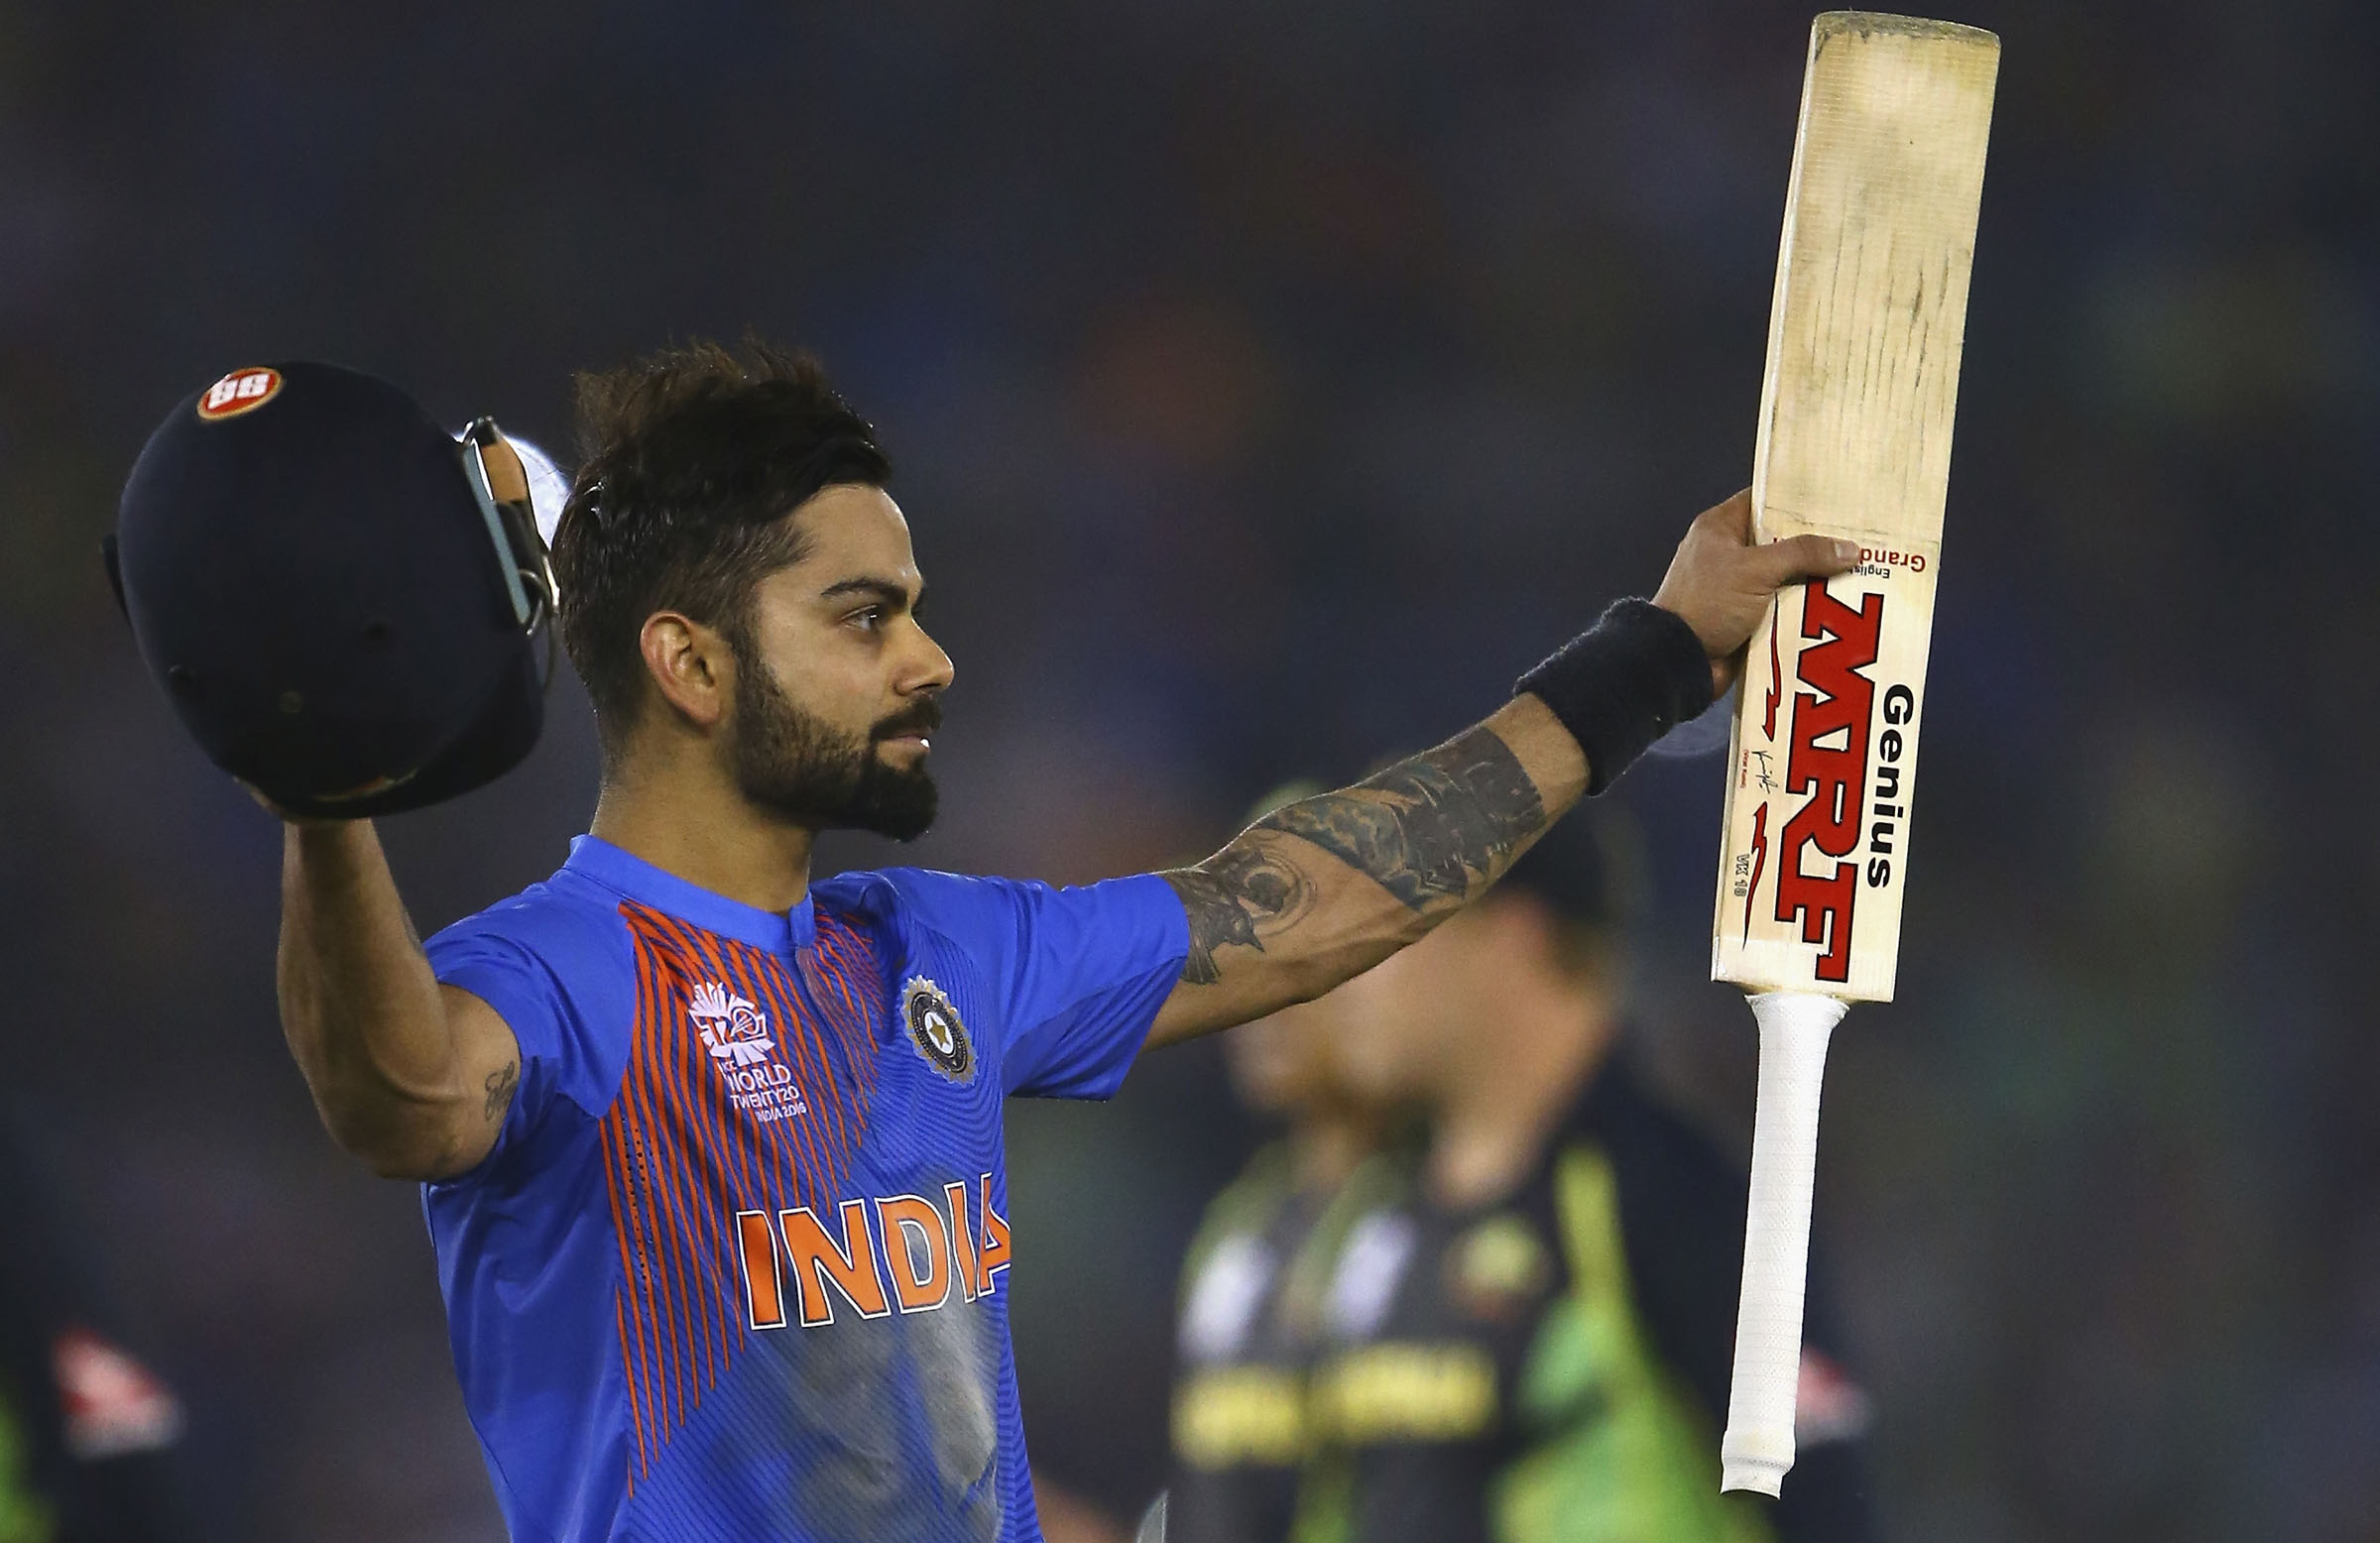 Virat Kohli hit a majestic 82 not out against Australia in the 2016 ICC World T20 // Getty